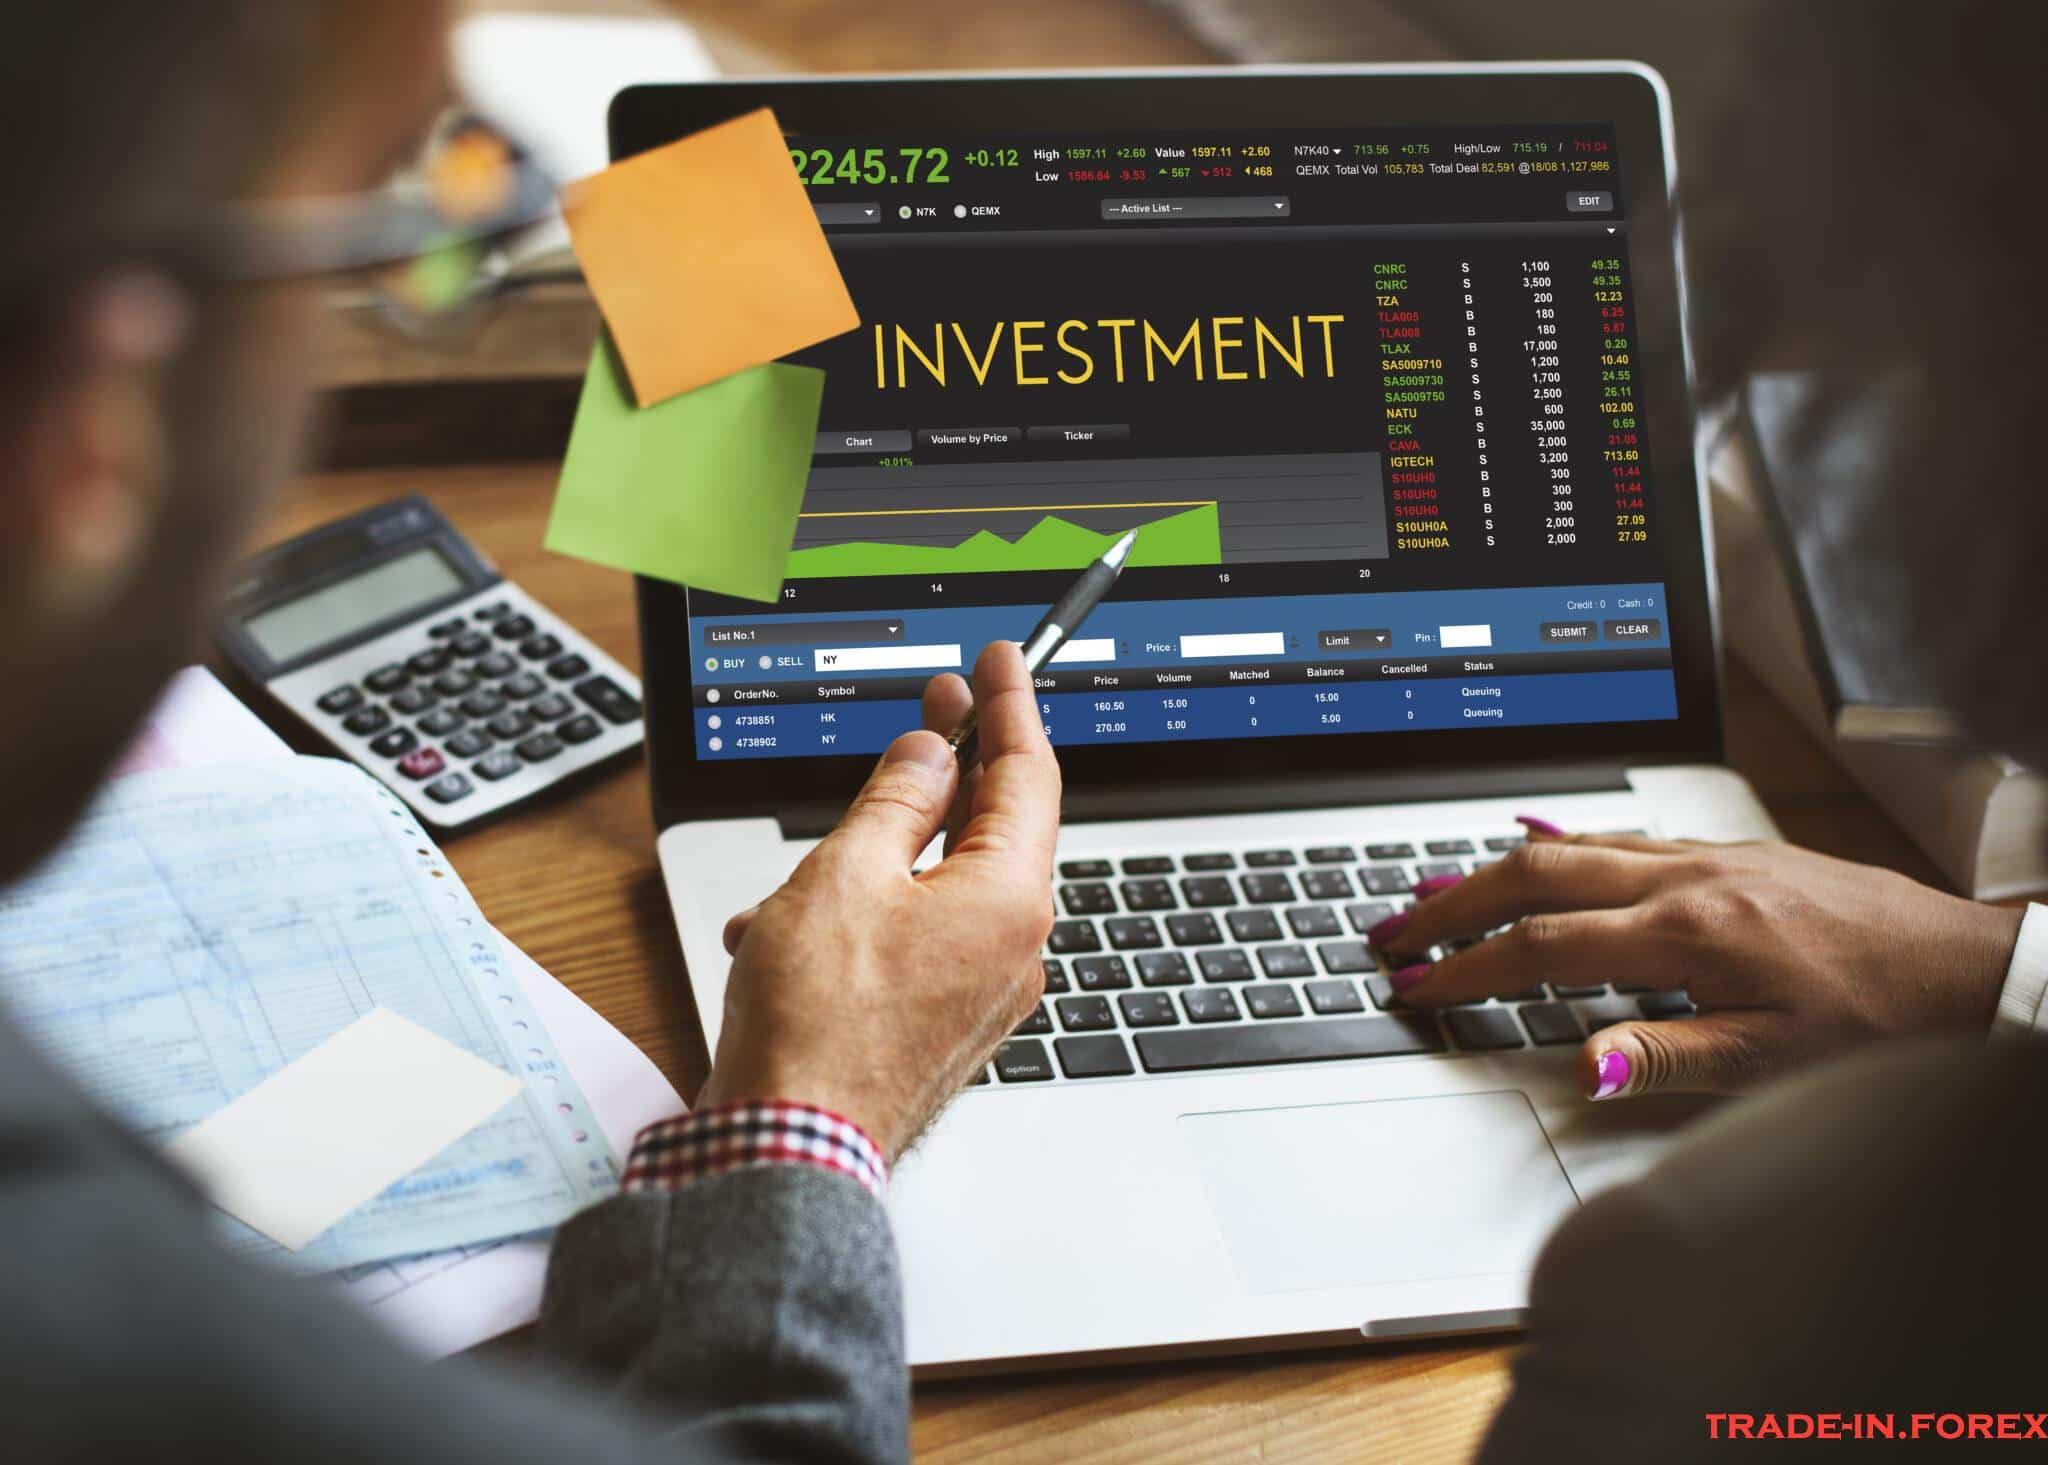 TOP 10 Forex Brokers in Indonesia for 2021 | Trade in Forex